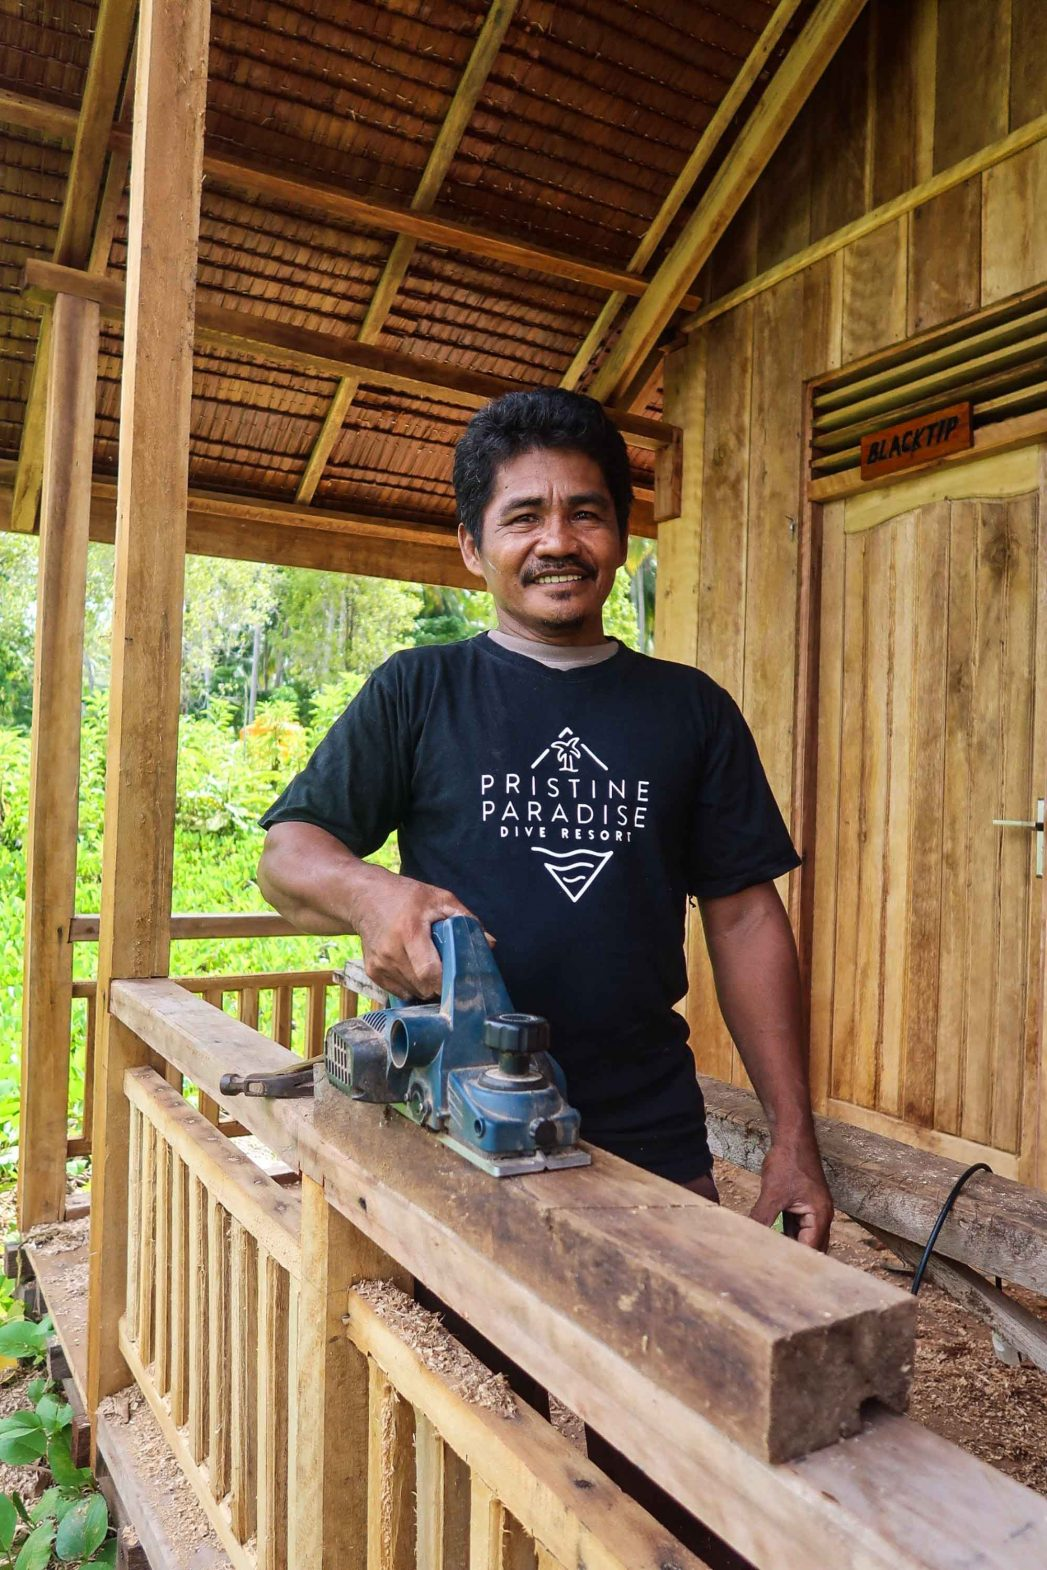 Papa Opi, who was 17 at the time that Mount Colo erupted, has returned to the island and now works as a carpenter at a local dive resort.